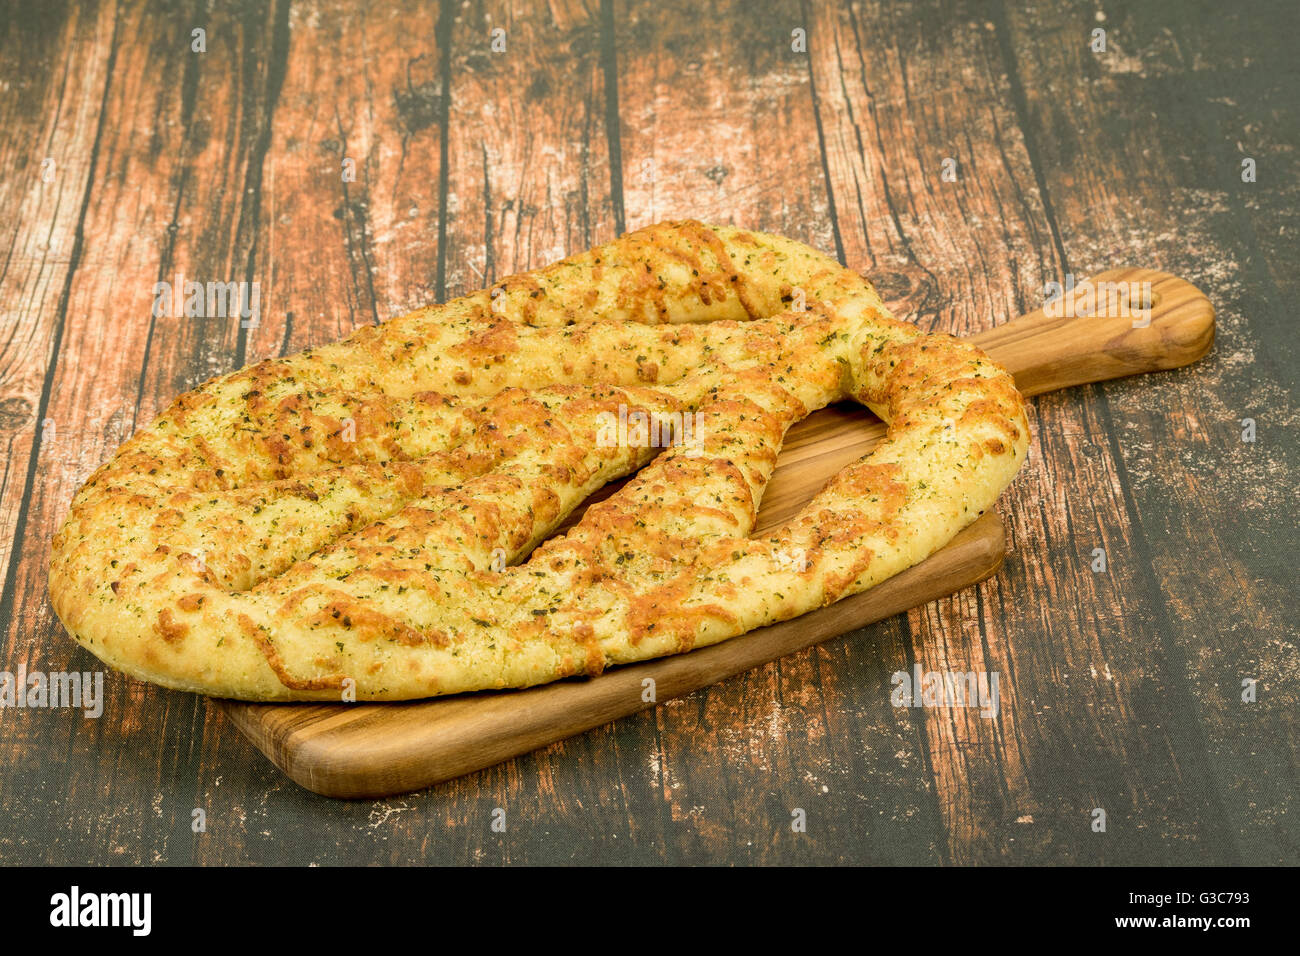 An authentic French Fougasse or Foccaccia bread from Provence, France.   This bread is made with olive oil, garlic, - Stock Image